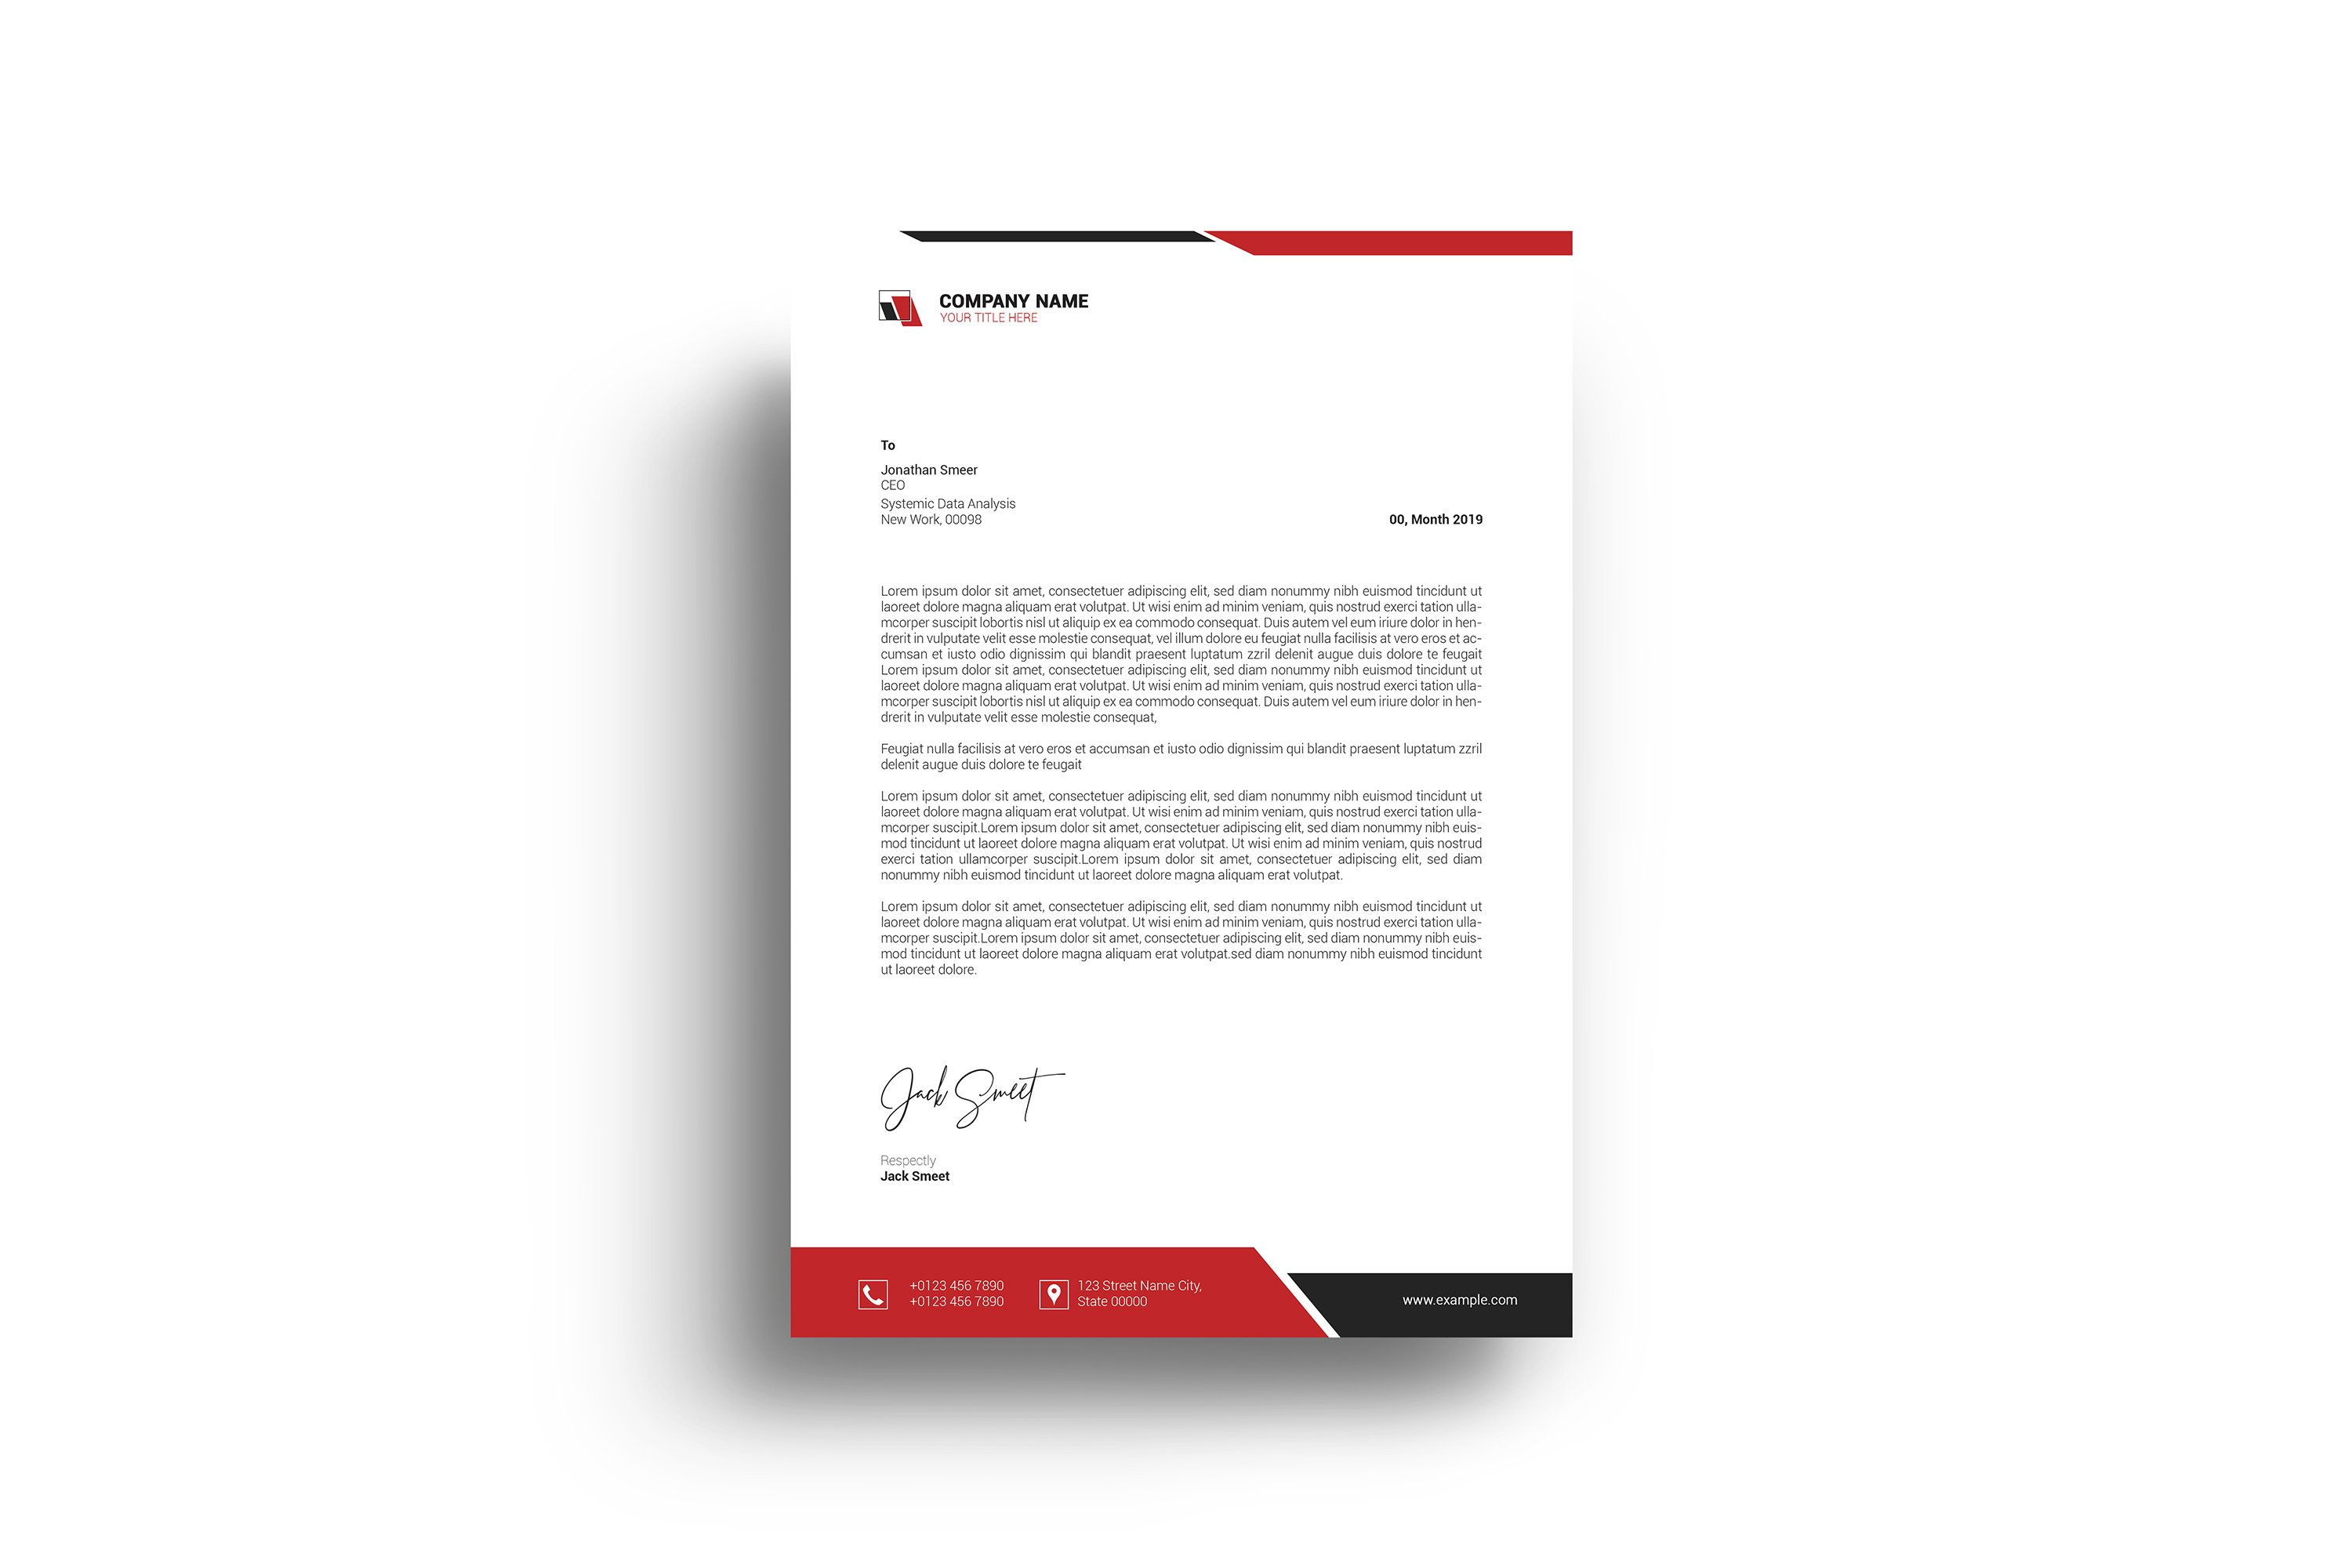 corporate letterhead template company professional cv consultants resume format for 3rd year engineering students high school academic